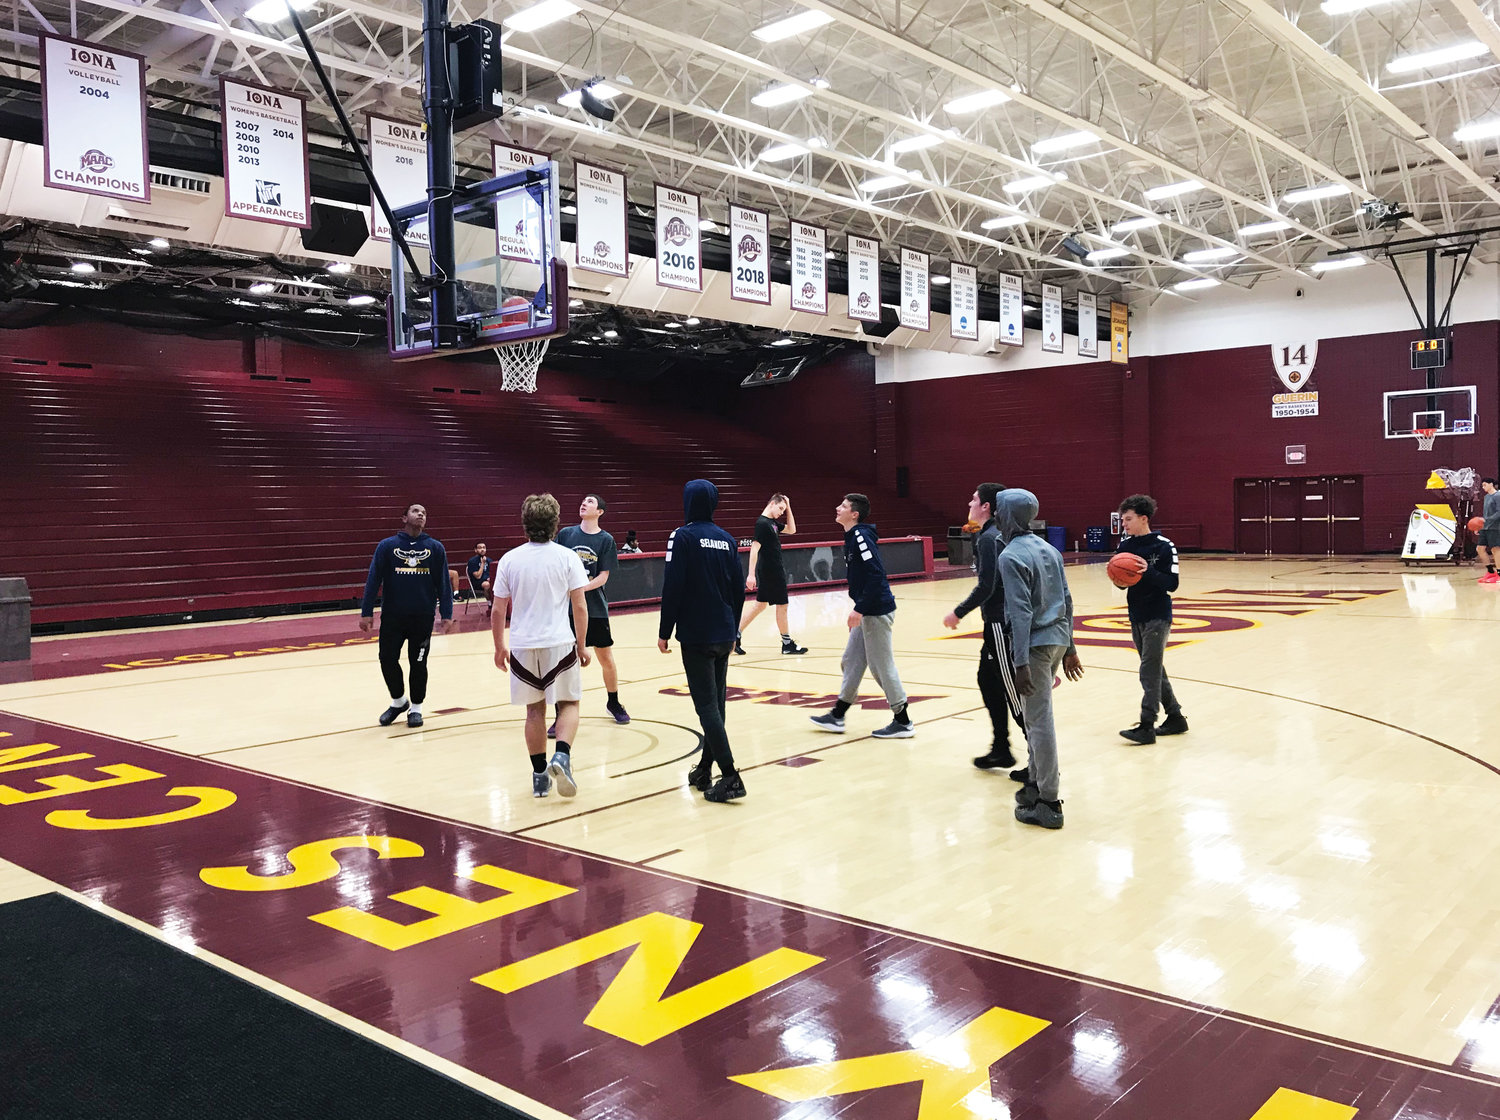 Our Lady of Lourdes High School boys basketball team participates in a shootaround at Iona College in New Rochelle after working on a community service project to convert an 18th-century Quaker church into a two-family home in Chappaqua Dec. 1.